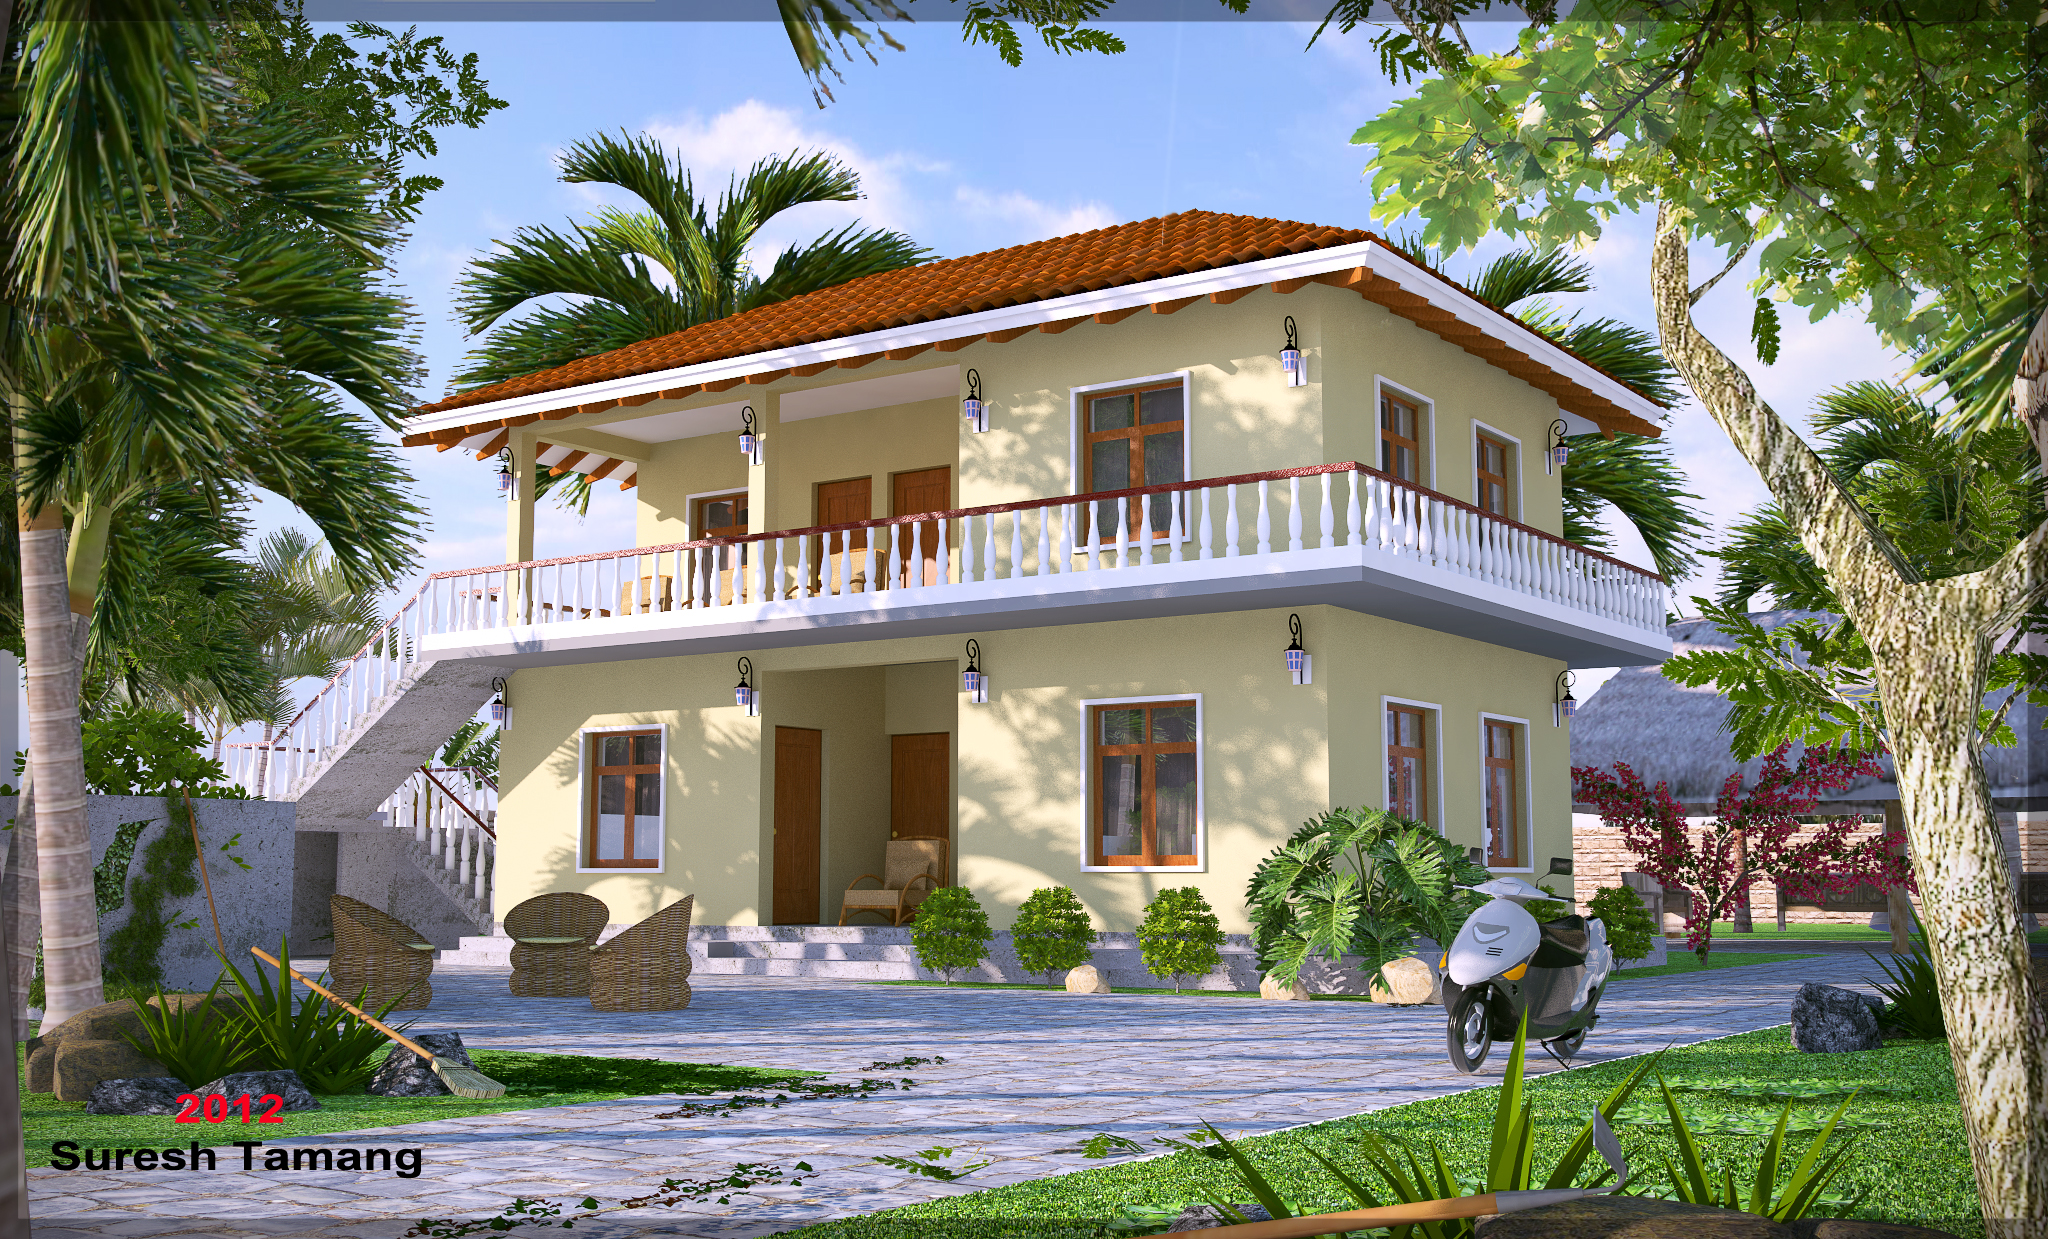 Marvelous Sketchup Farm House.